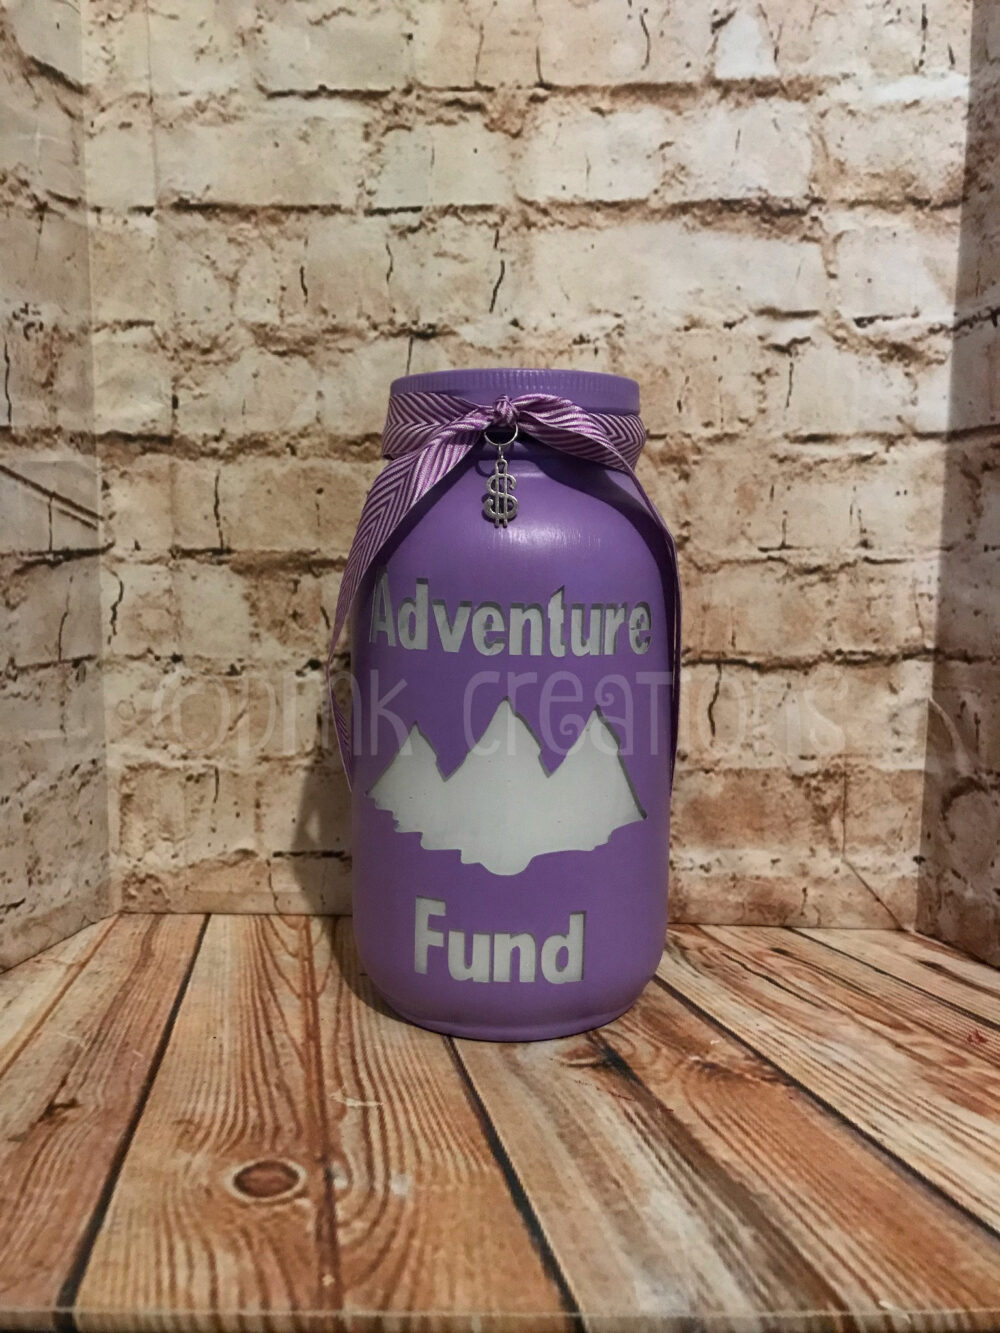 Adventure Fund Painted Mason Jar Bank, Adventure, Mountains, Bank, Piggy Painted Mason Jar, Gift, Jar Fund Bank